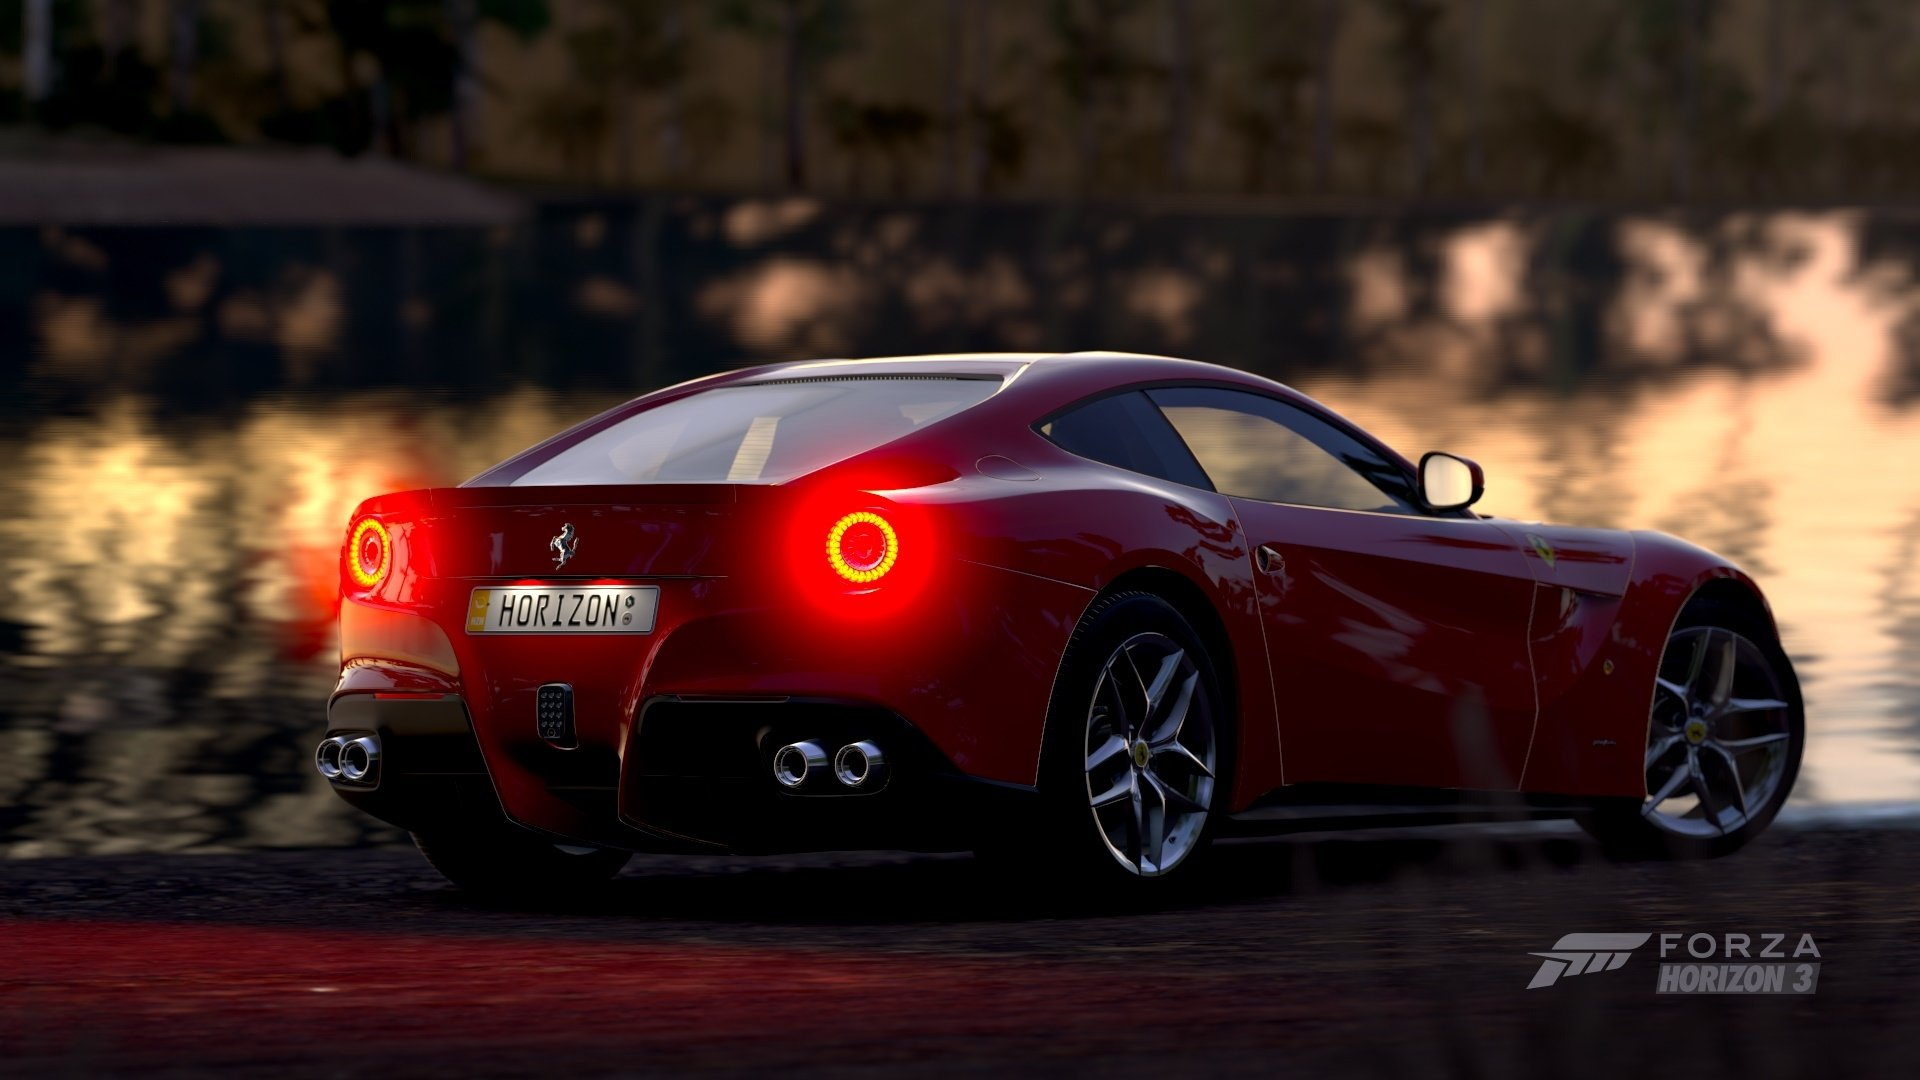 2012 Ferrari F12 Berlinetta Papel De Parede Hd Plano De Fundo 1920x1080 Id 855839 Wallpaper Abyss